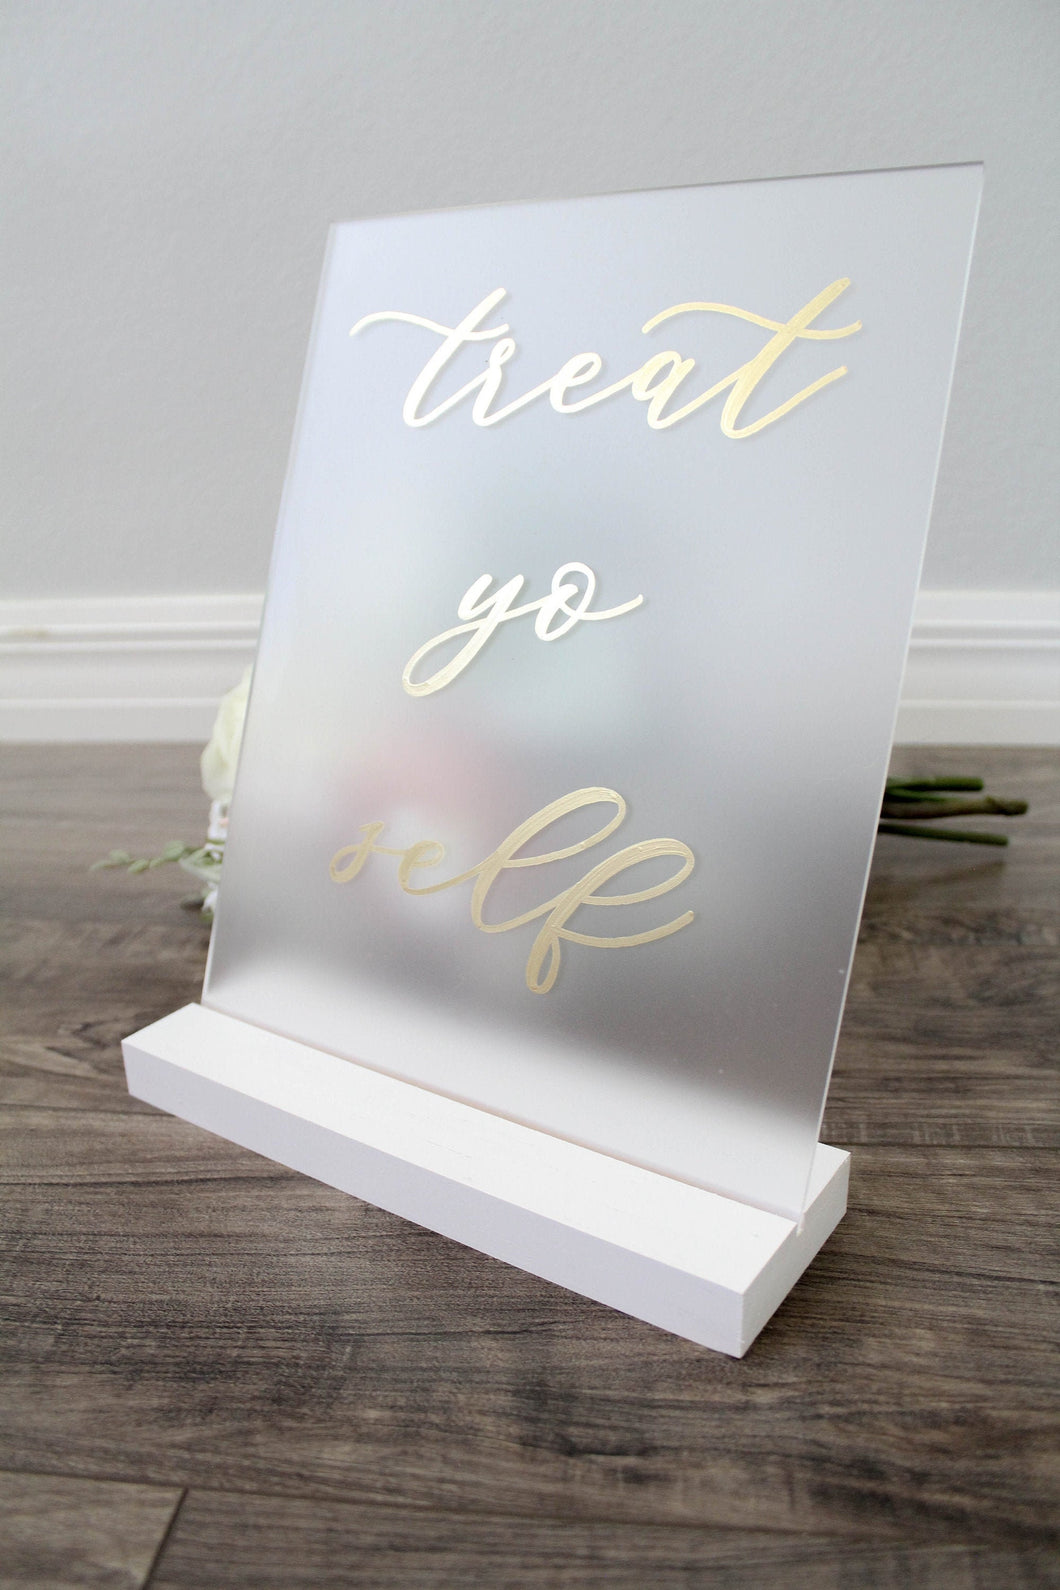 Treat Yo Self Frosted Acrylic Sign